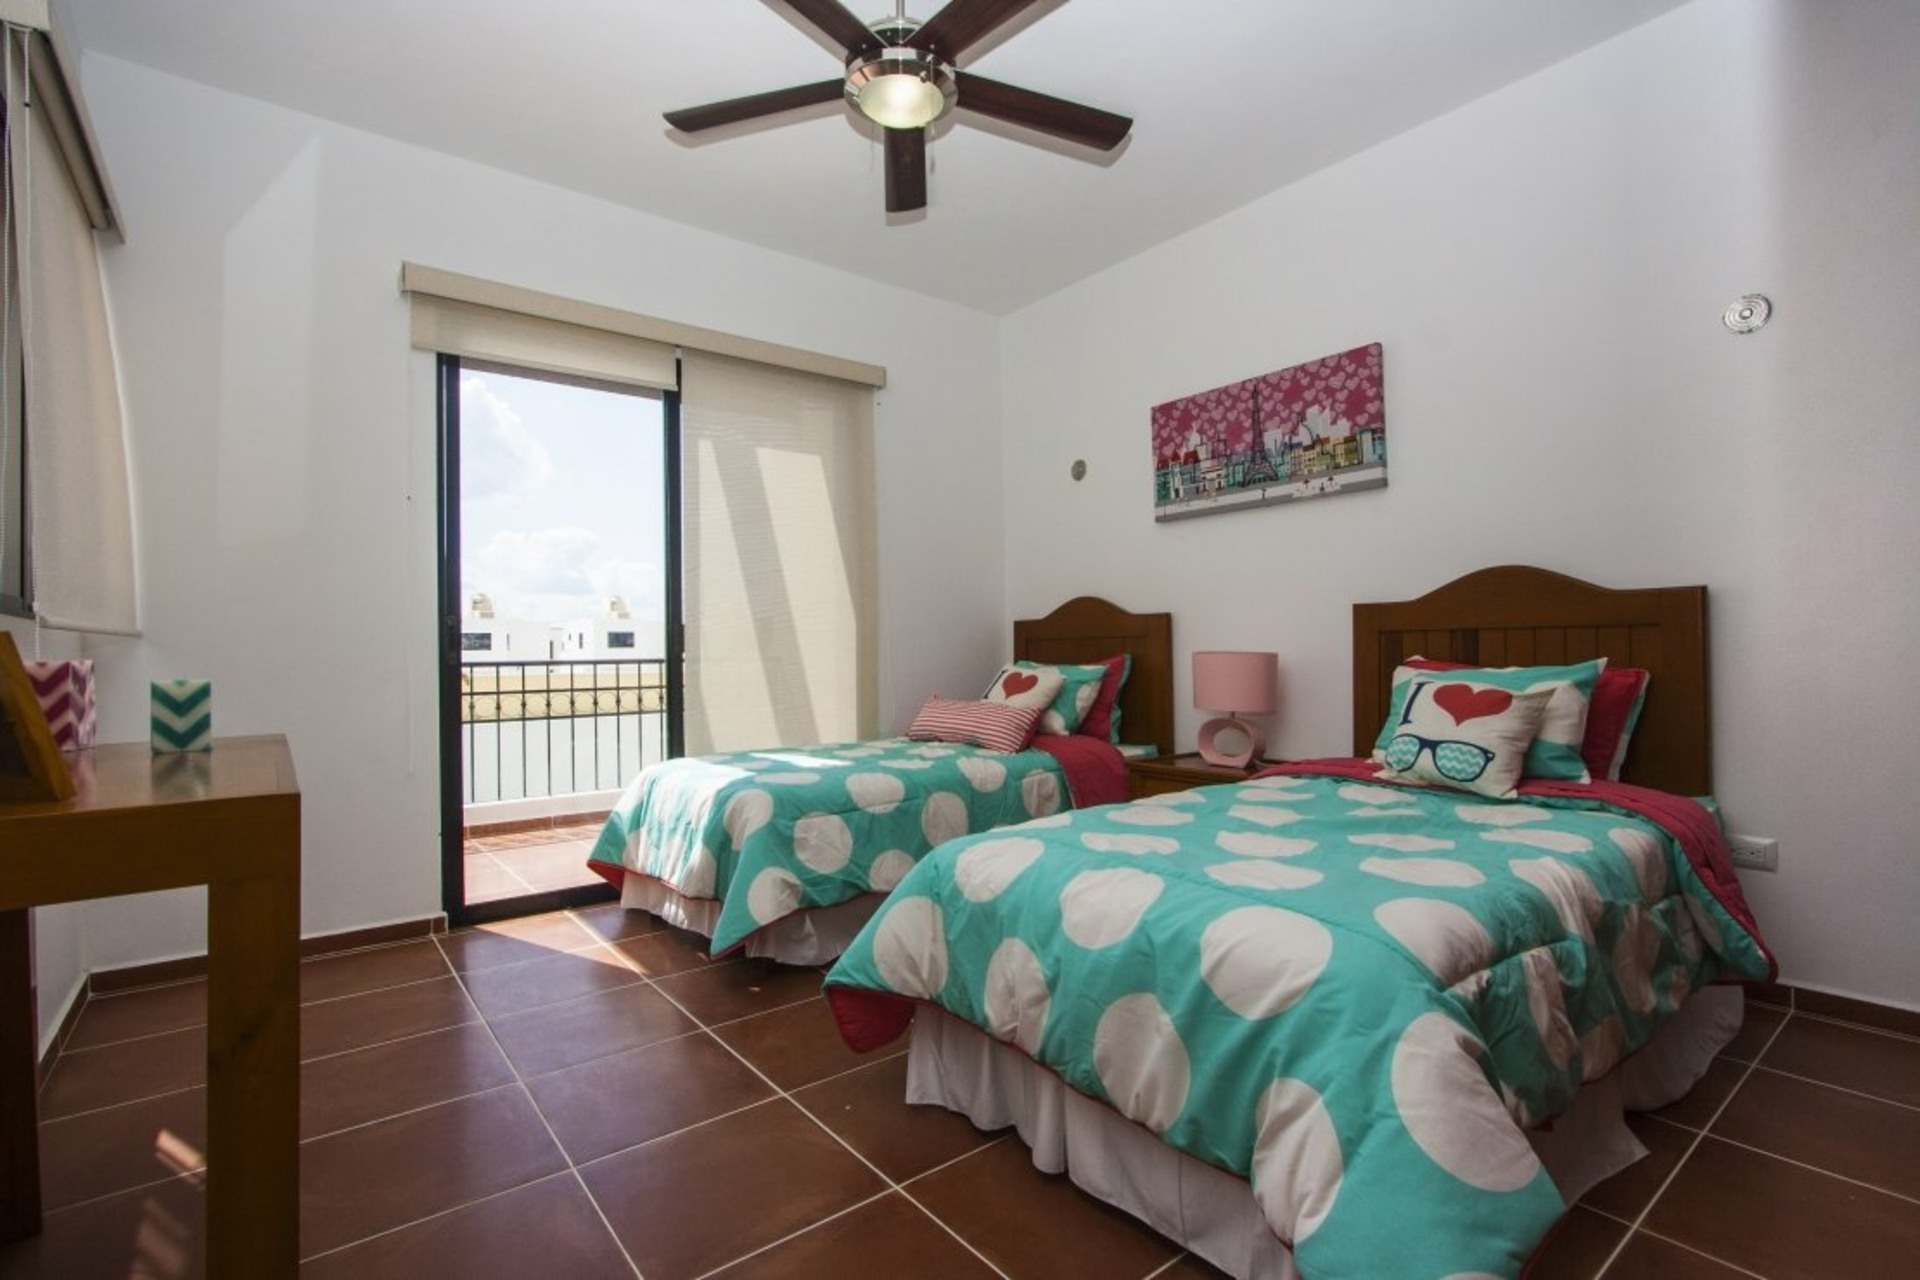 image 5 - House For sale Autres pays / Other countries - 9 rooms